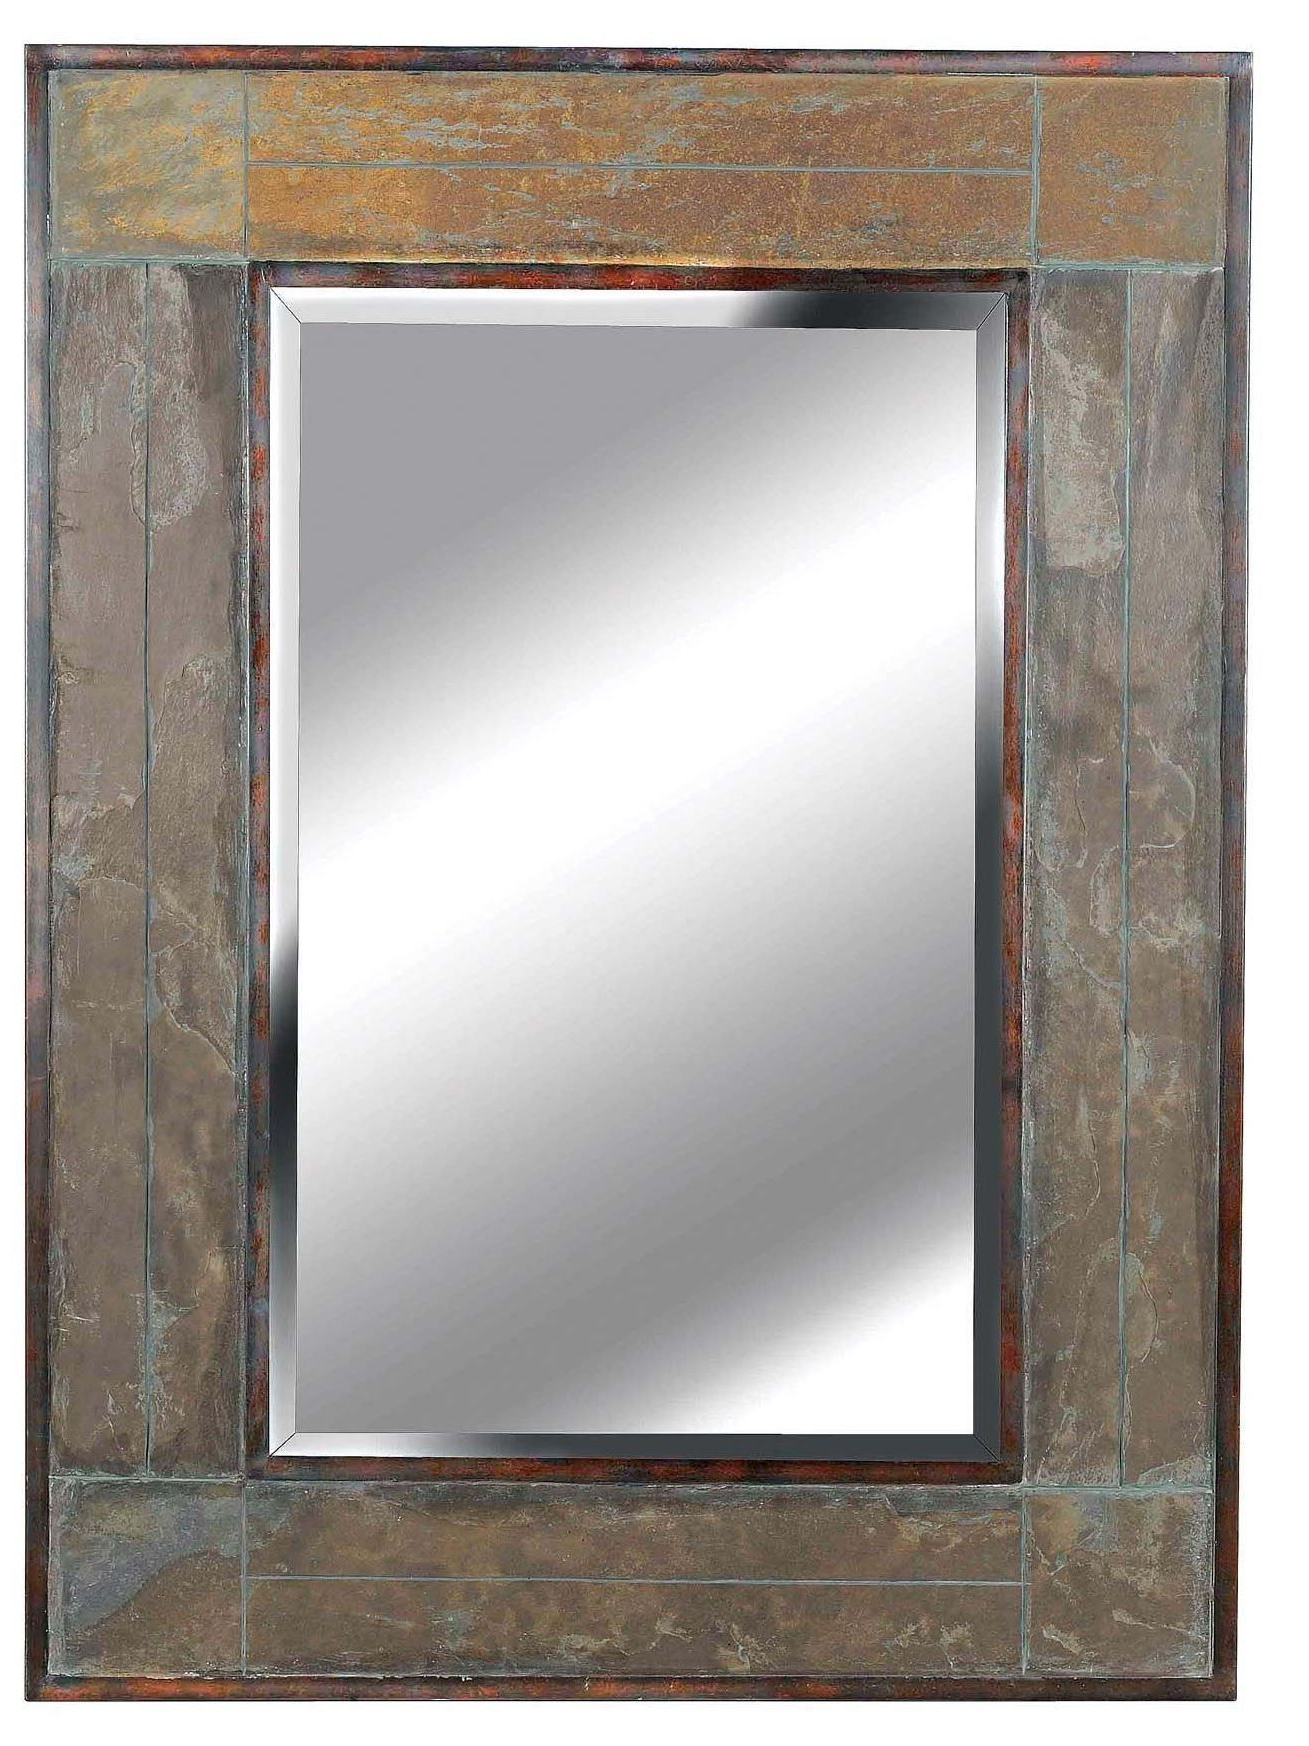 Home Decor Mirrors, Wall Throughout 2020 Janie Rectangular Wall Mirrors (Gallery 19 of 20)